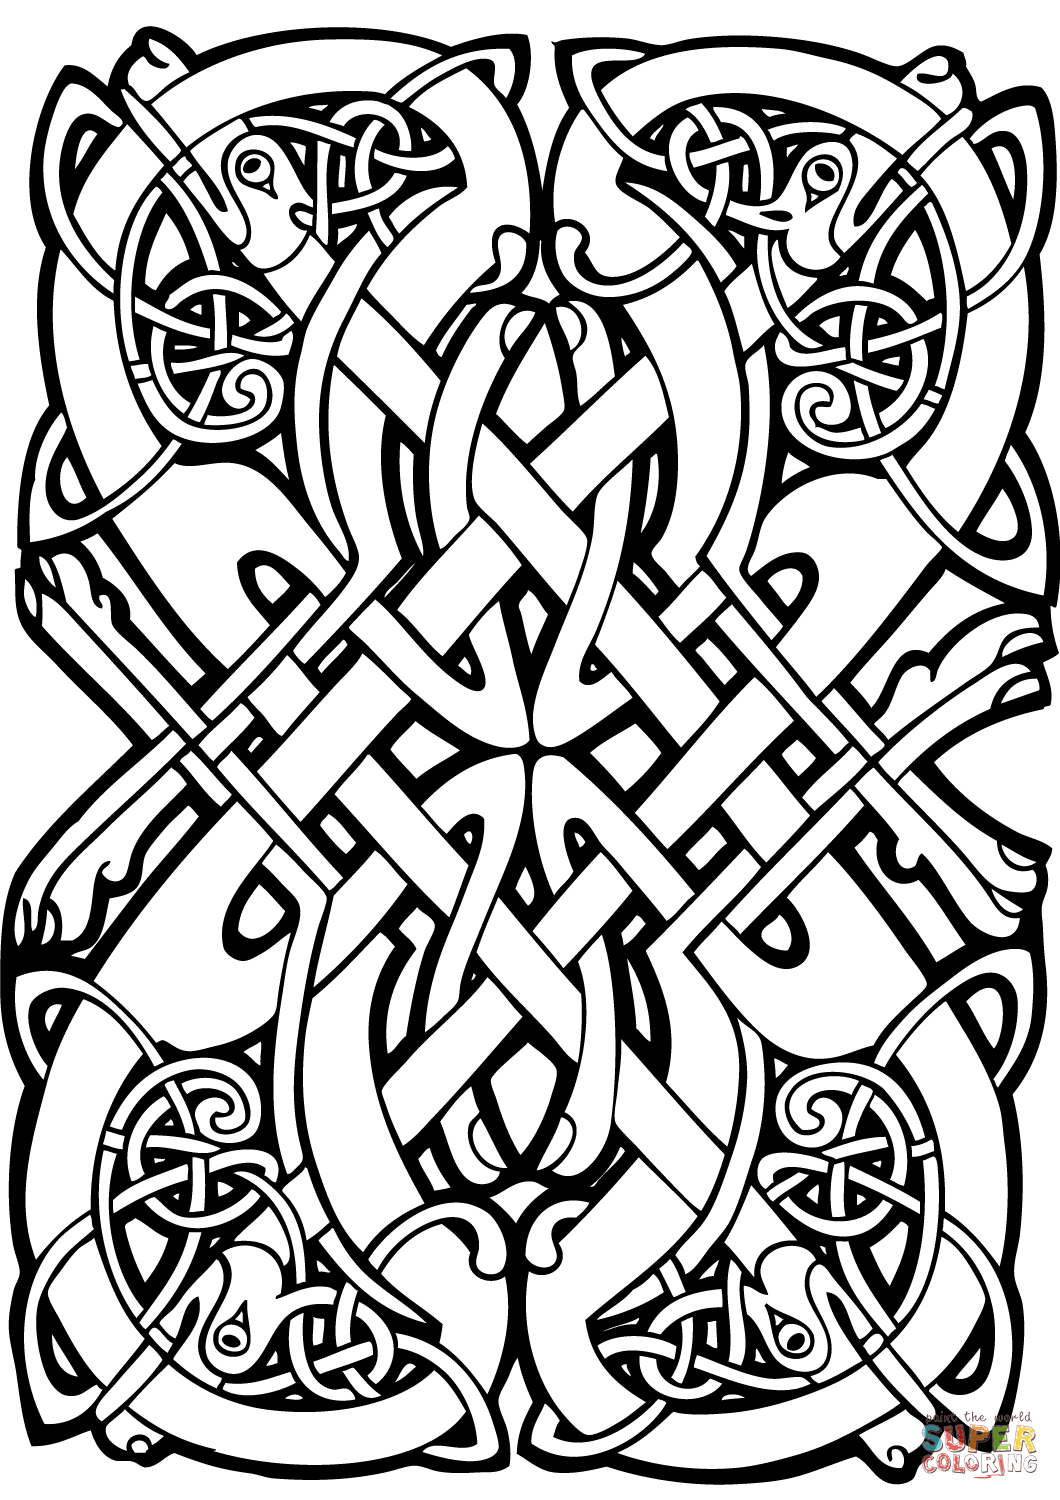 book of kells colouring pages free icolor quotcelticquot book of kells celtic art coloring books colouring of free kells book pages